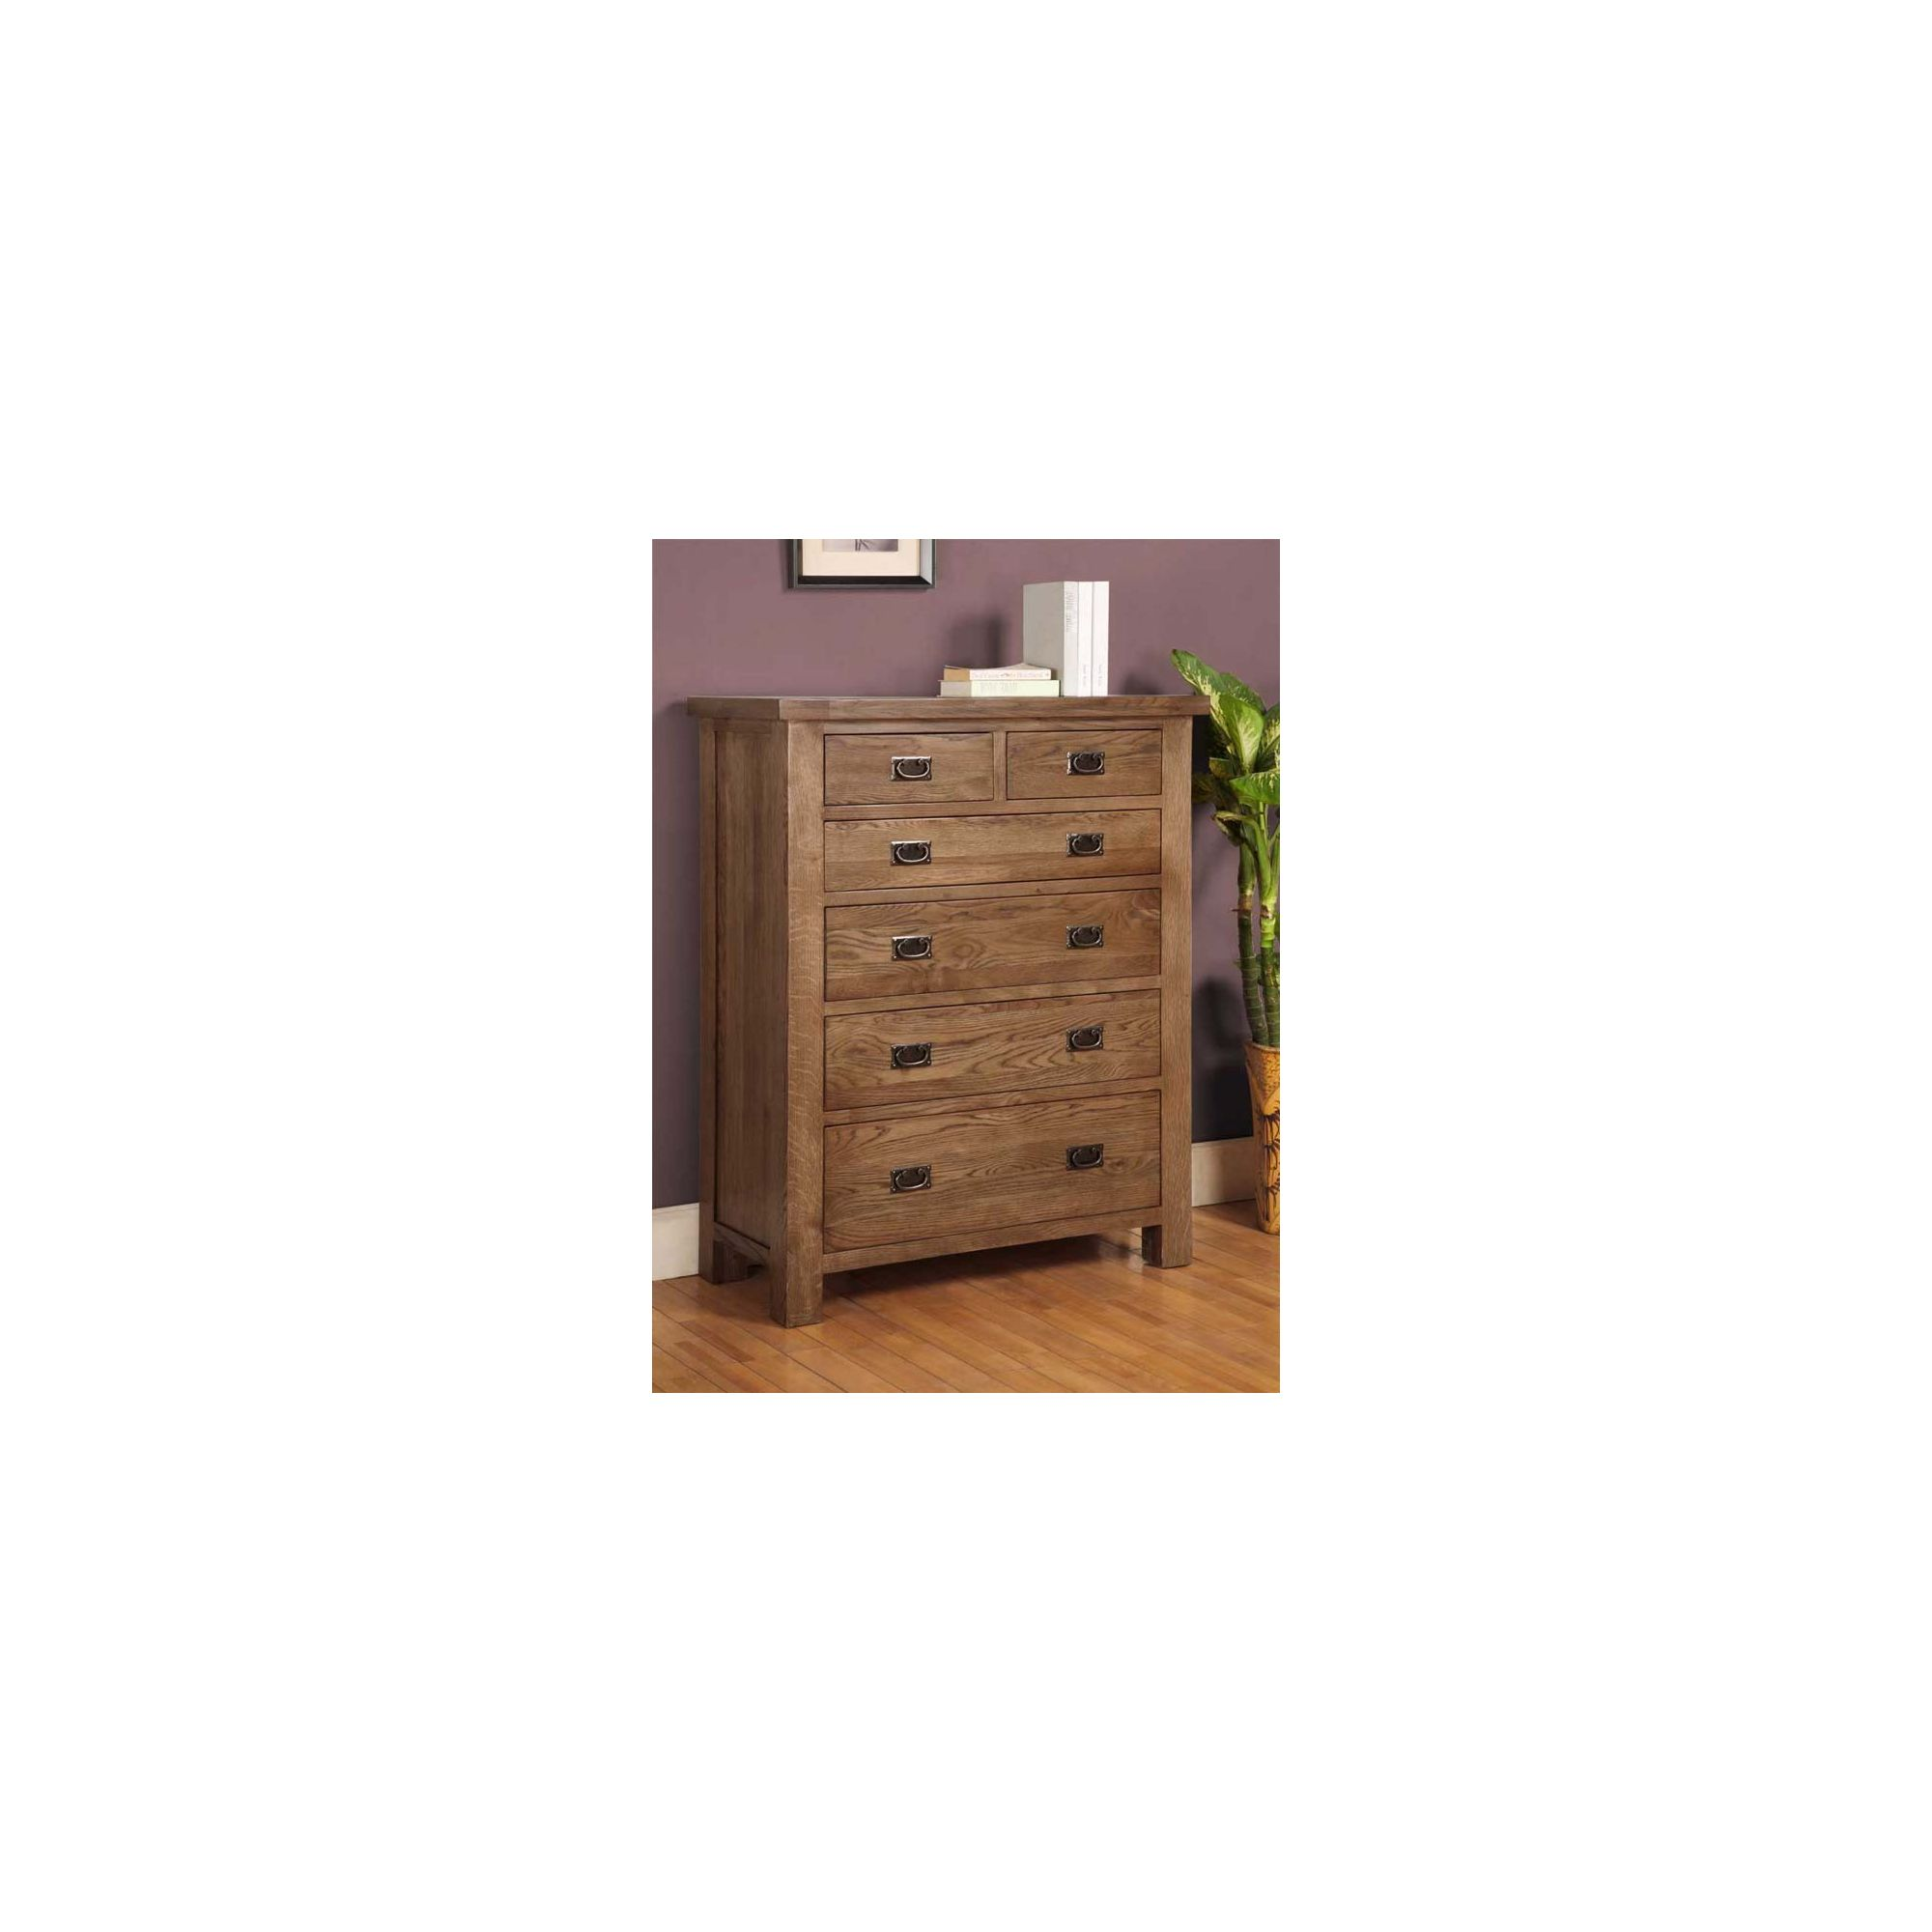 Hawkshead Brooklyn Six Drawers Chest in Rich Patina at Tesco Direct